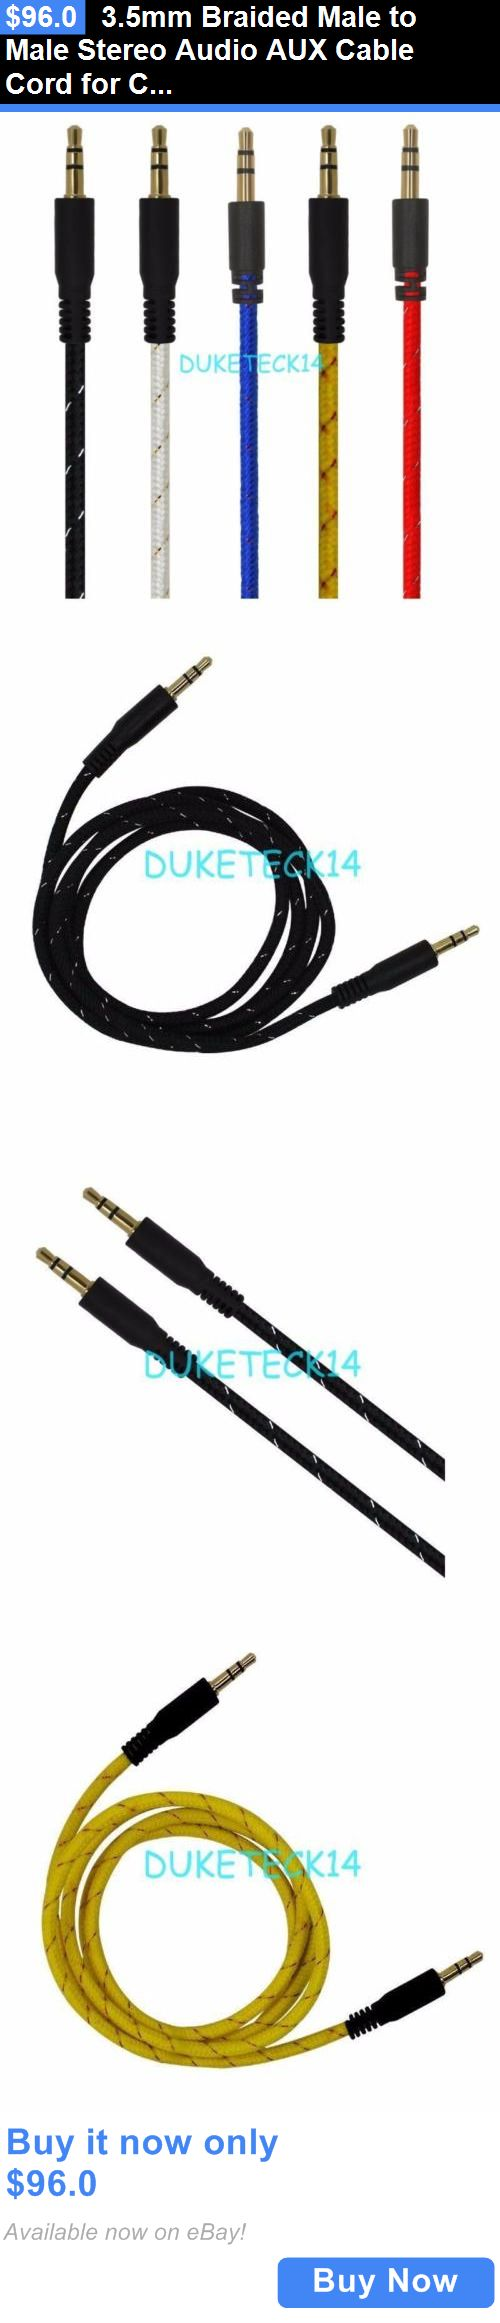 Cables and Adapters: 3.5Mm Braided Male To Male Stereo Audio Aux Cable Cord For Car Iphone Wholesale BUY IT NOW ONLY: $96.0